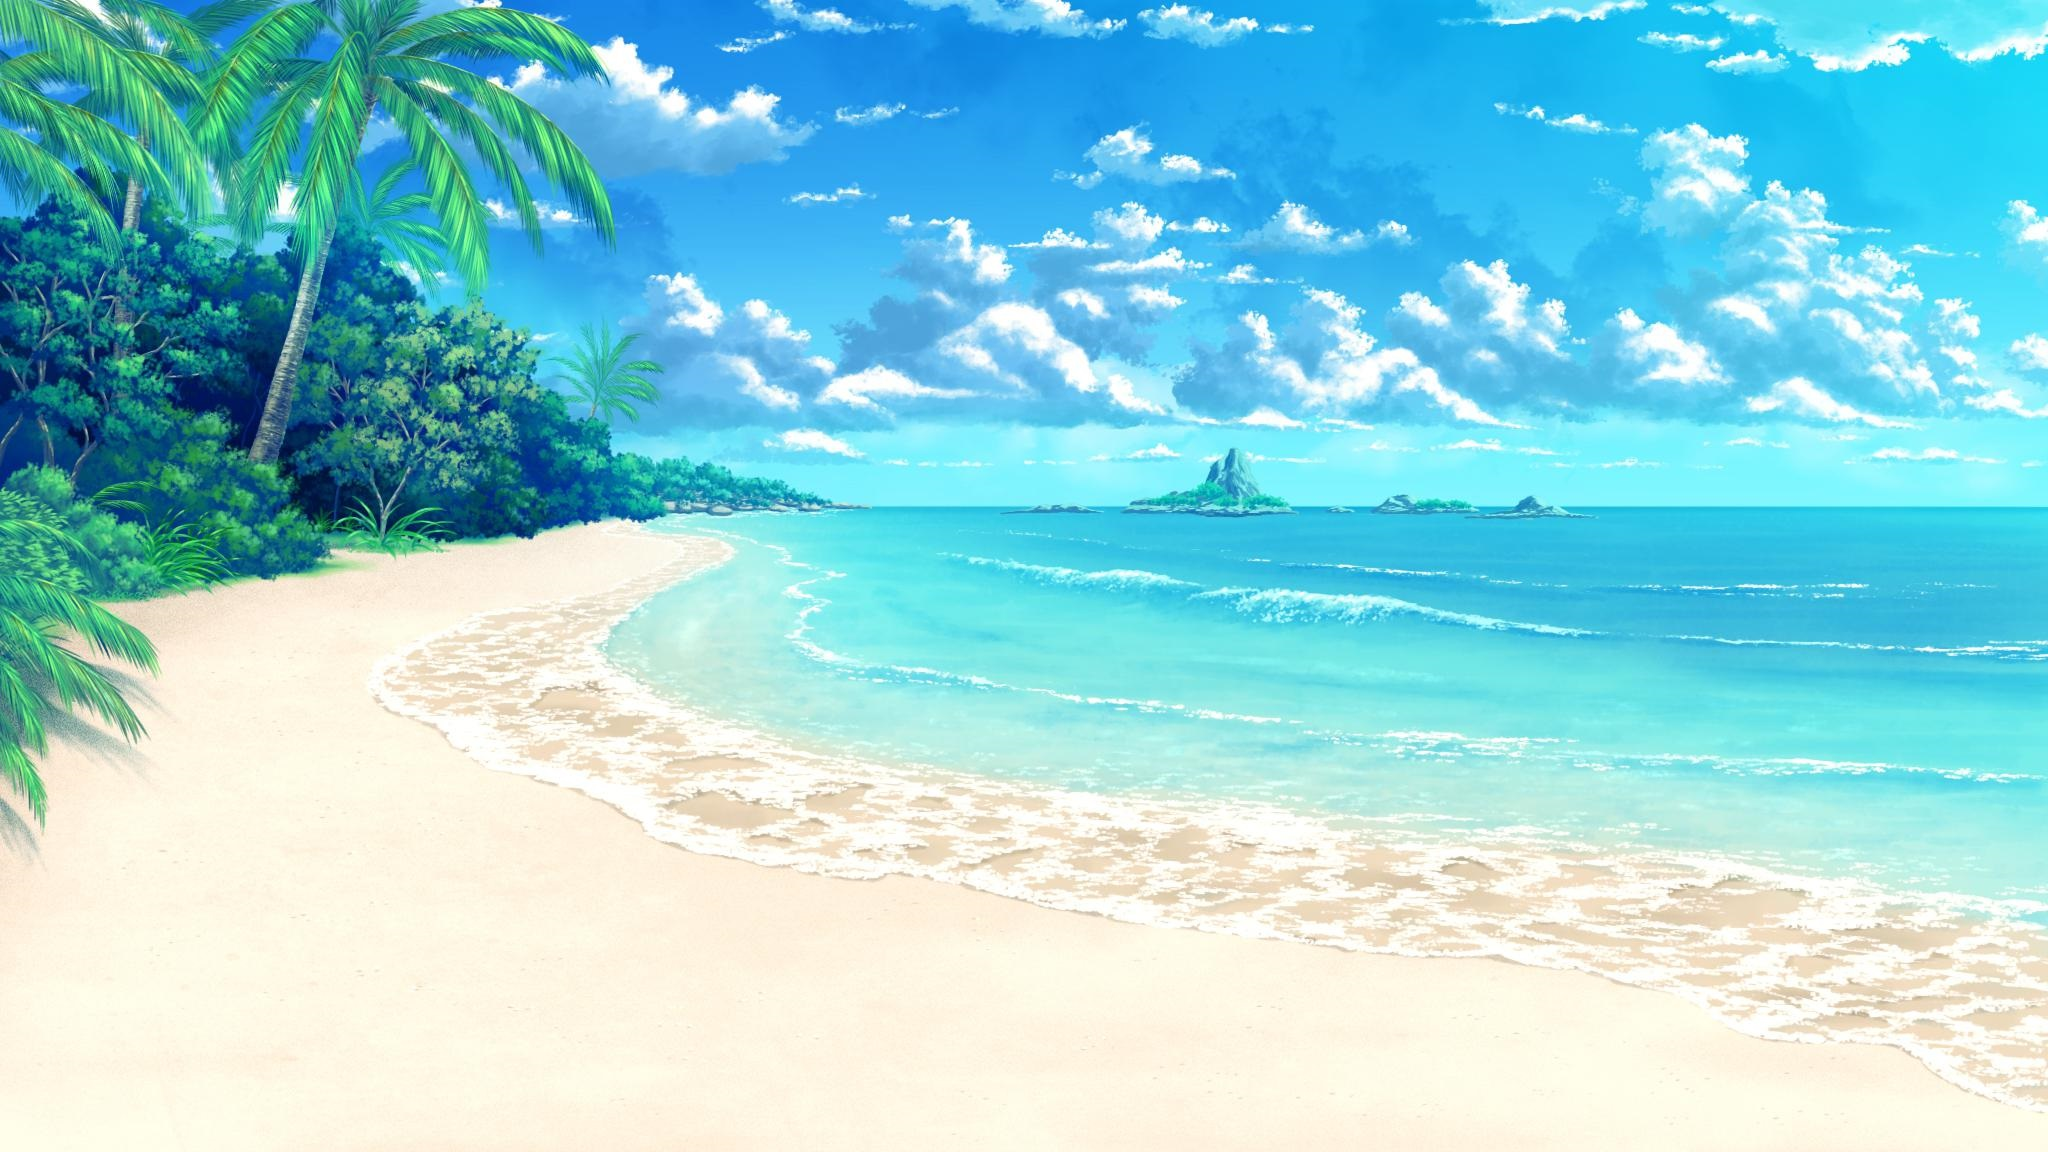 Beach Anime Background Posted By Zoey Cunningham 21 anime background art anisceneryporn twitter anime background anime scenery anime scenery wallpaper. beach anime background posted by zoey